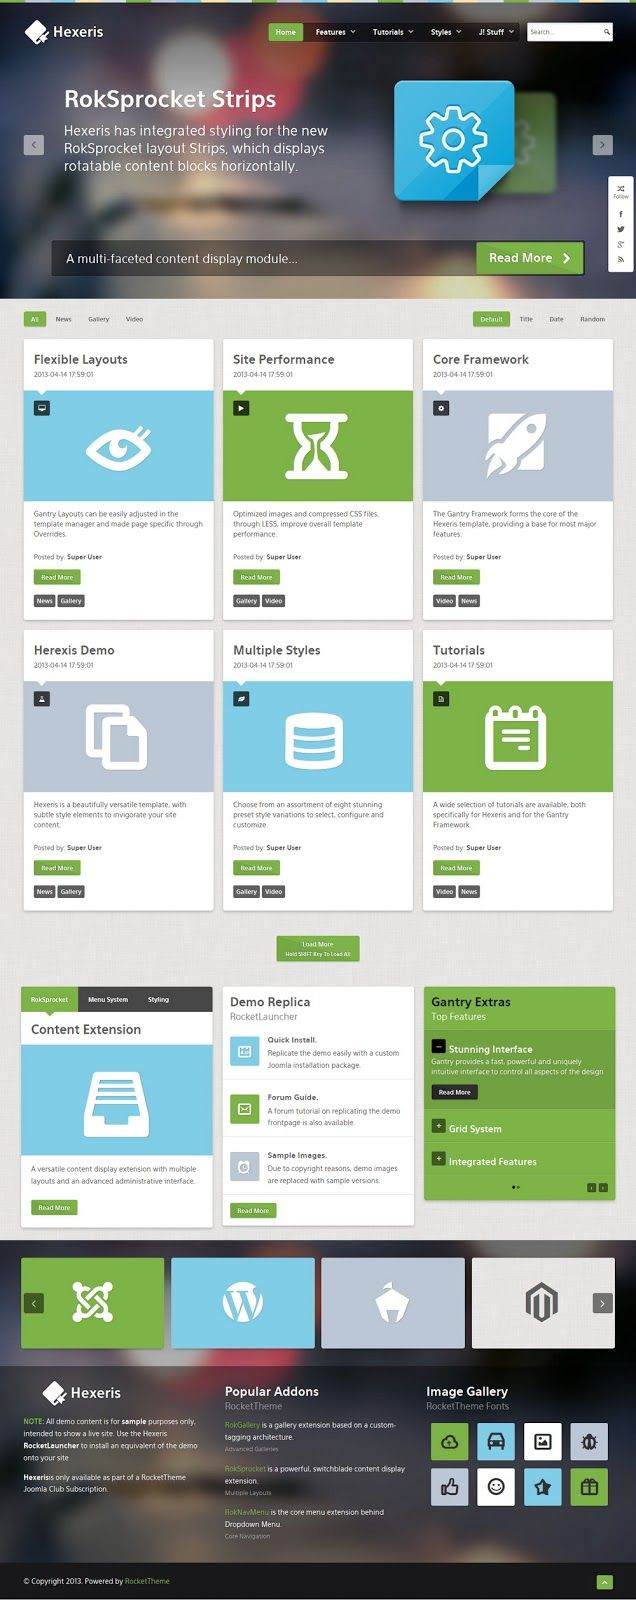 Hexeris is a beautifully versatile template with rich style elements to invigorate your site content. The template supports integrated styling for the new RokSprocket layout: Strips; as well as other layout modes. A standard assortment of features are also available, predominantly powered by the Gantry Framework, such as intuitive layout controls; as well as others, such as the advanced Dropdown Menu and RocketTheme/Third Party extension styling.